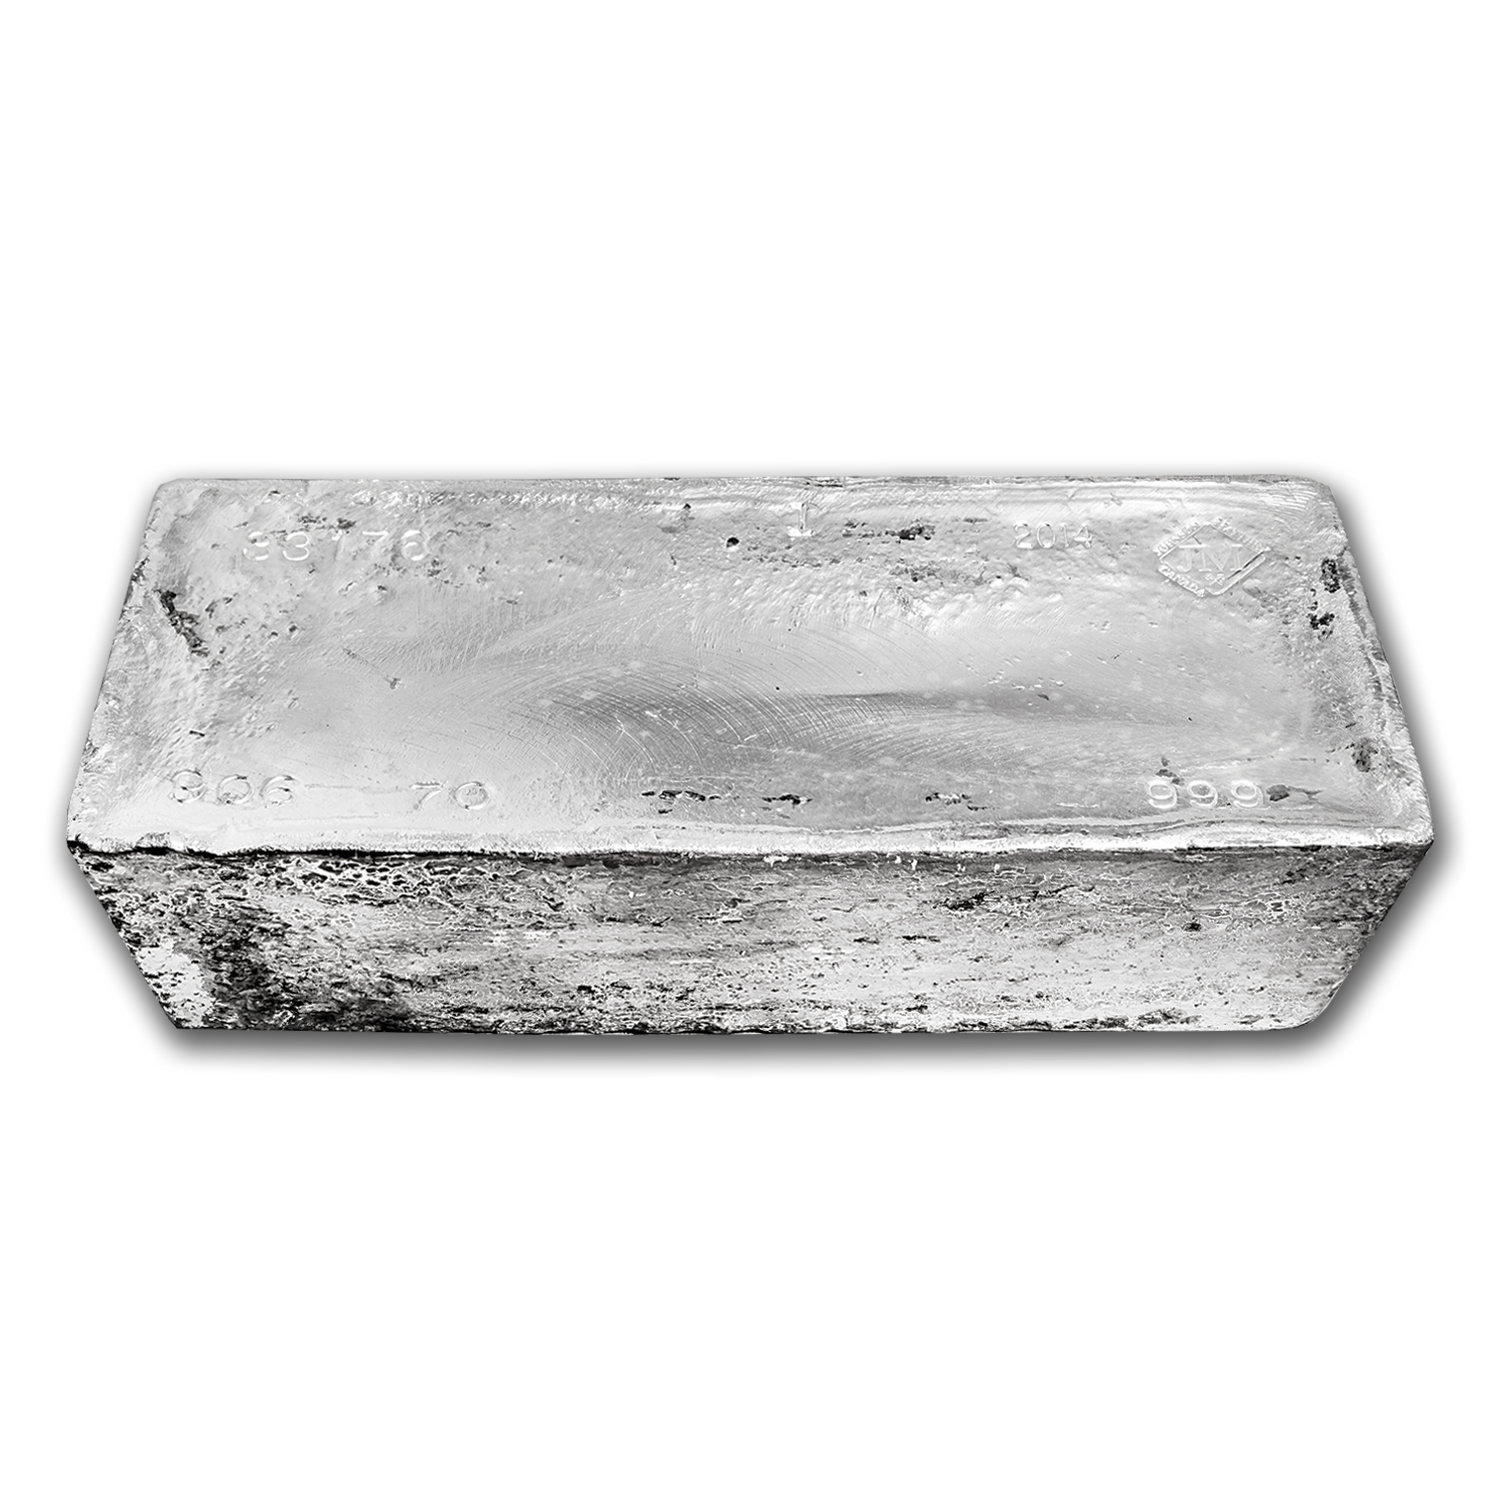 1044.30 oz Silver Bars - Johnson Matthey